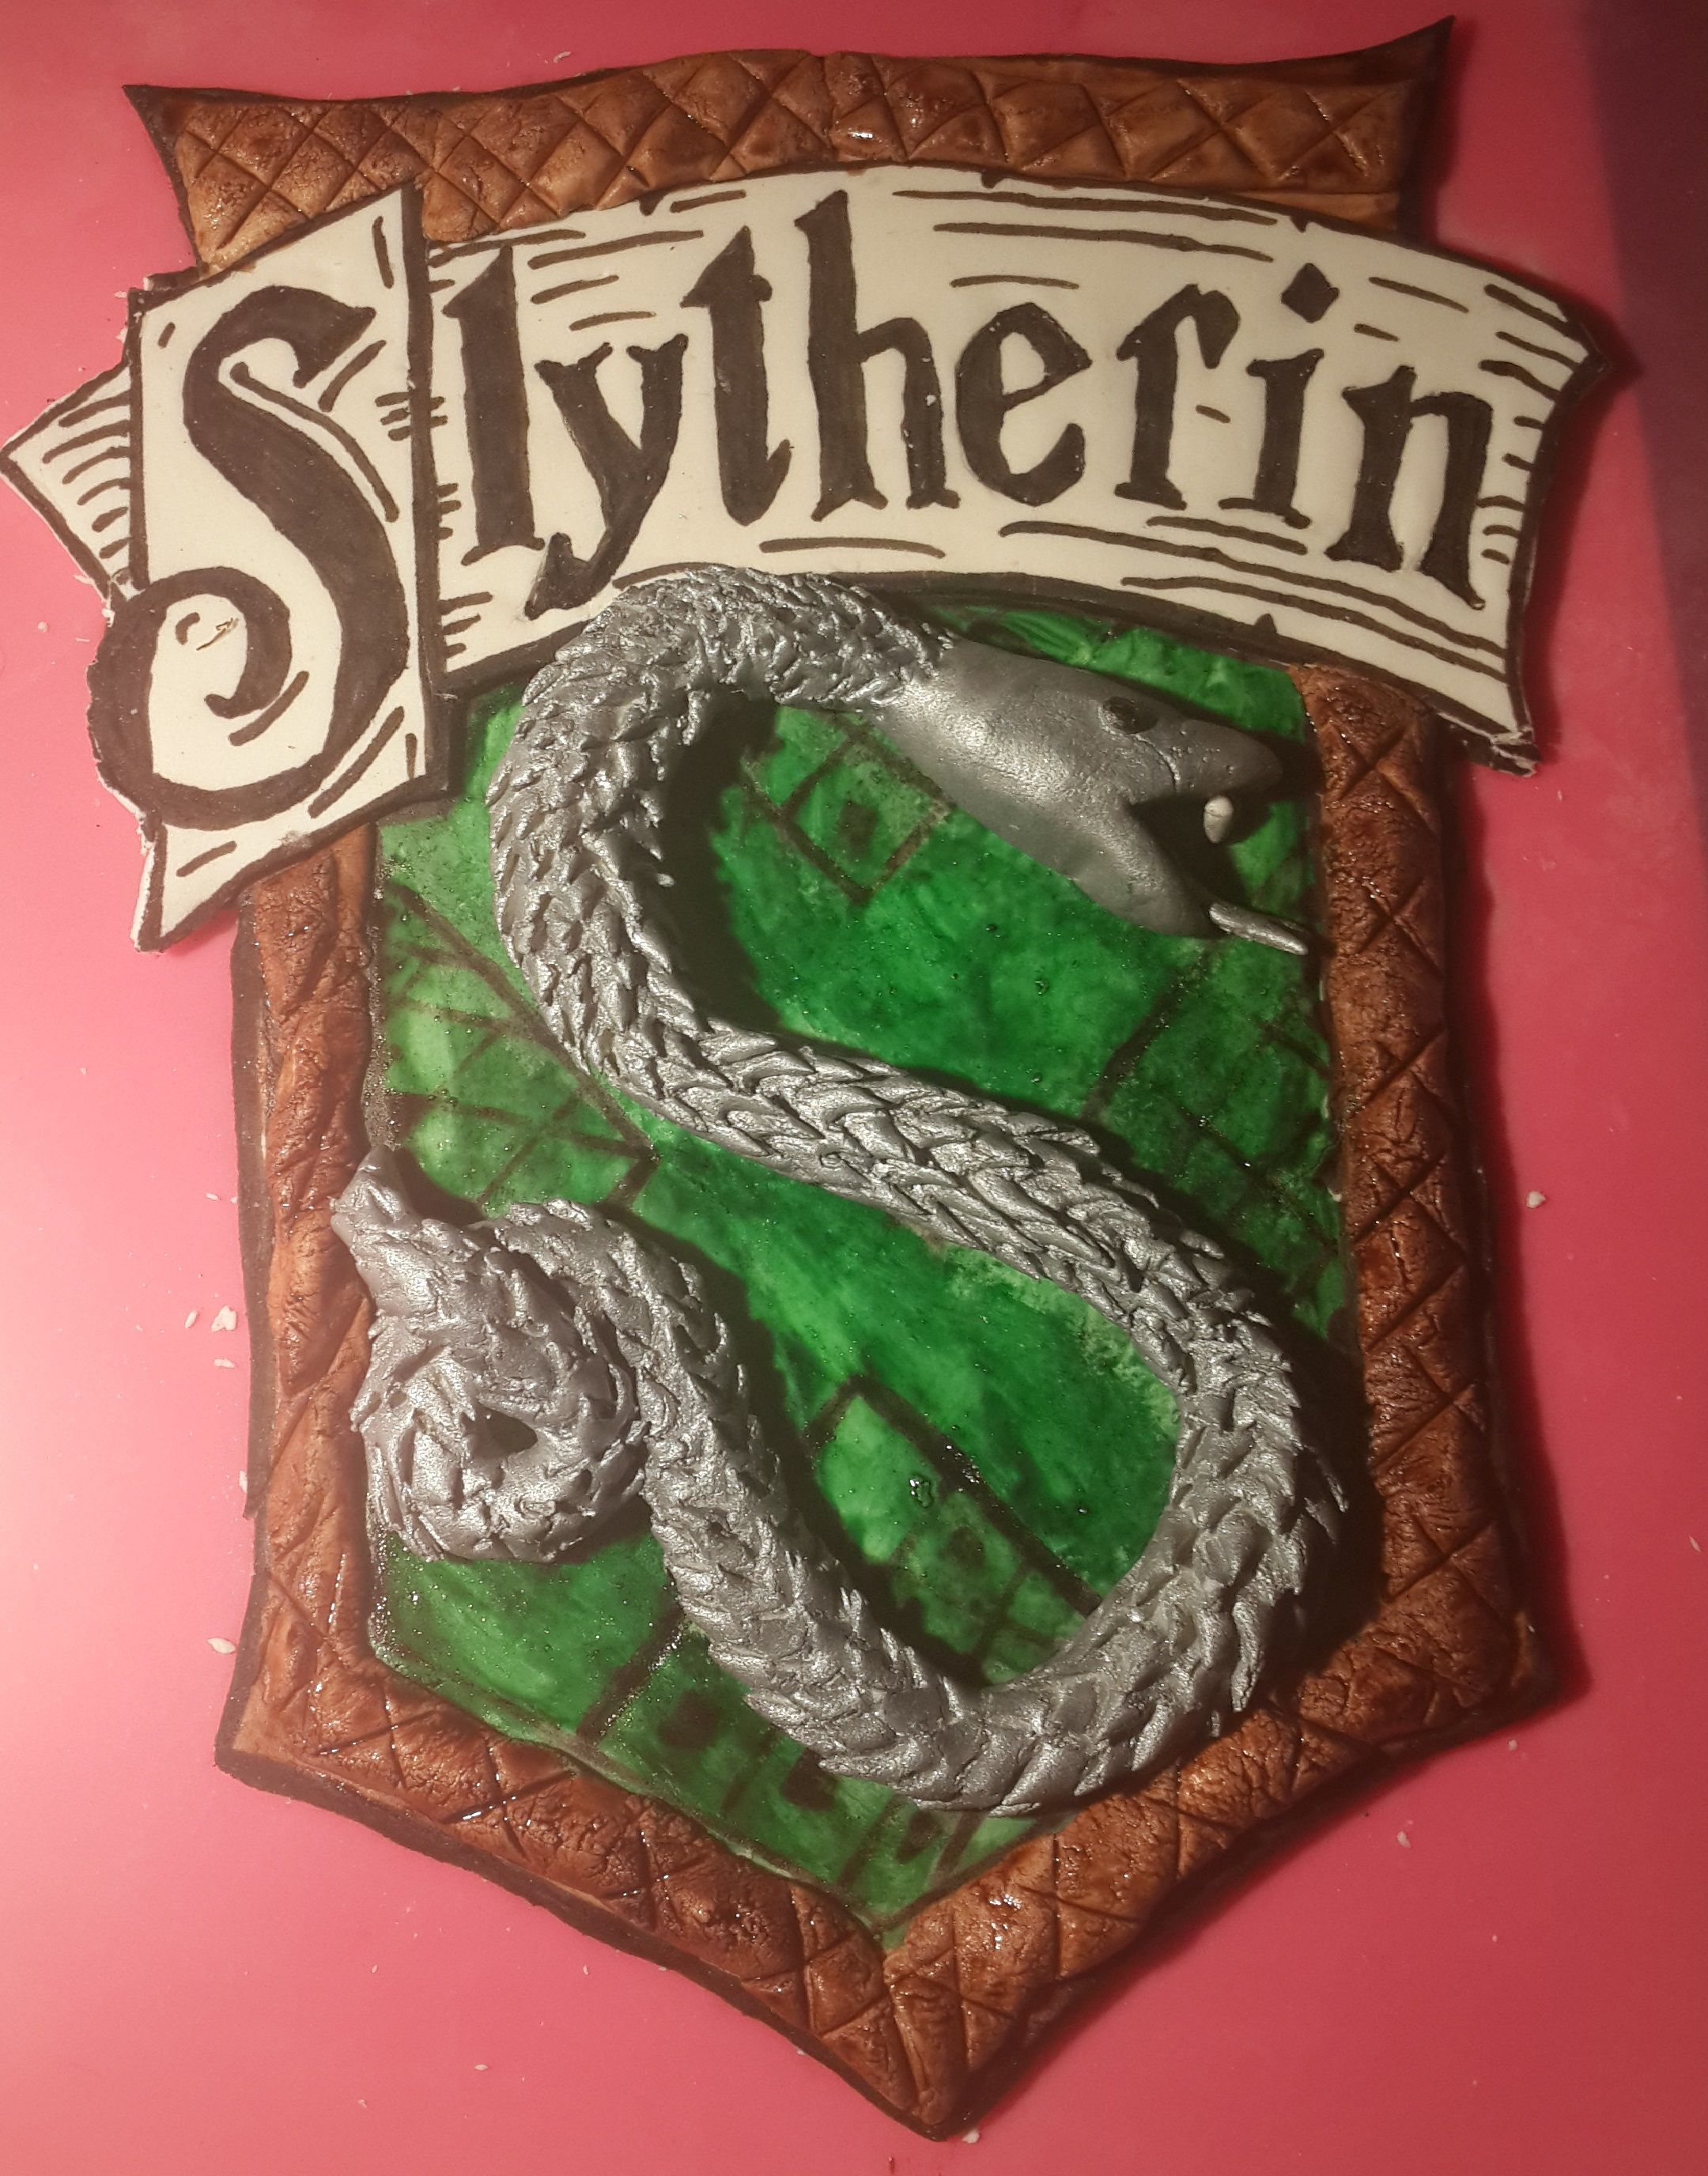 Slytherin Crest I made out of fondant, totally edible  Lynda Power